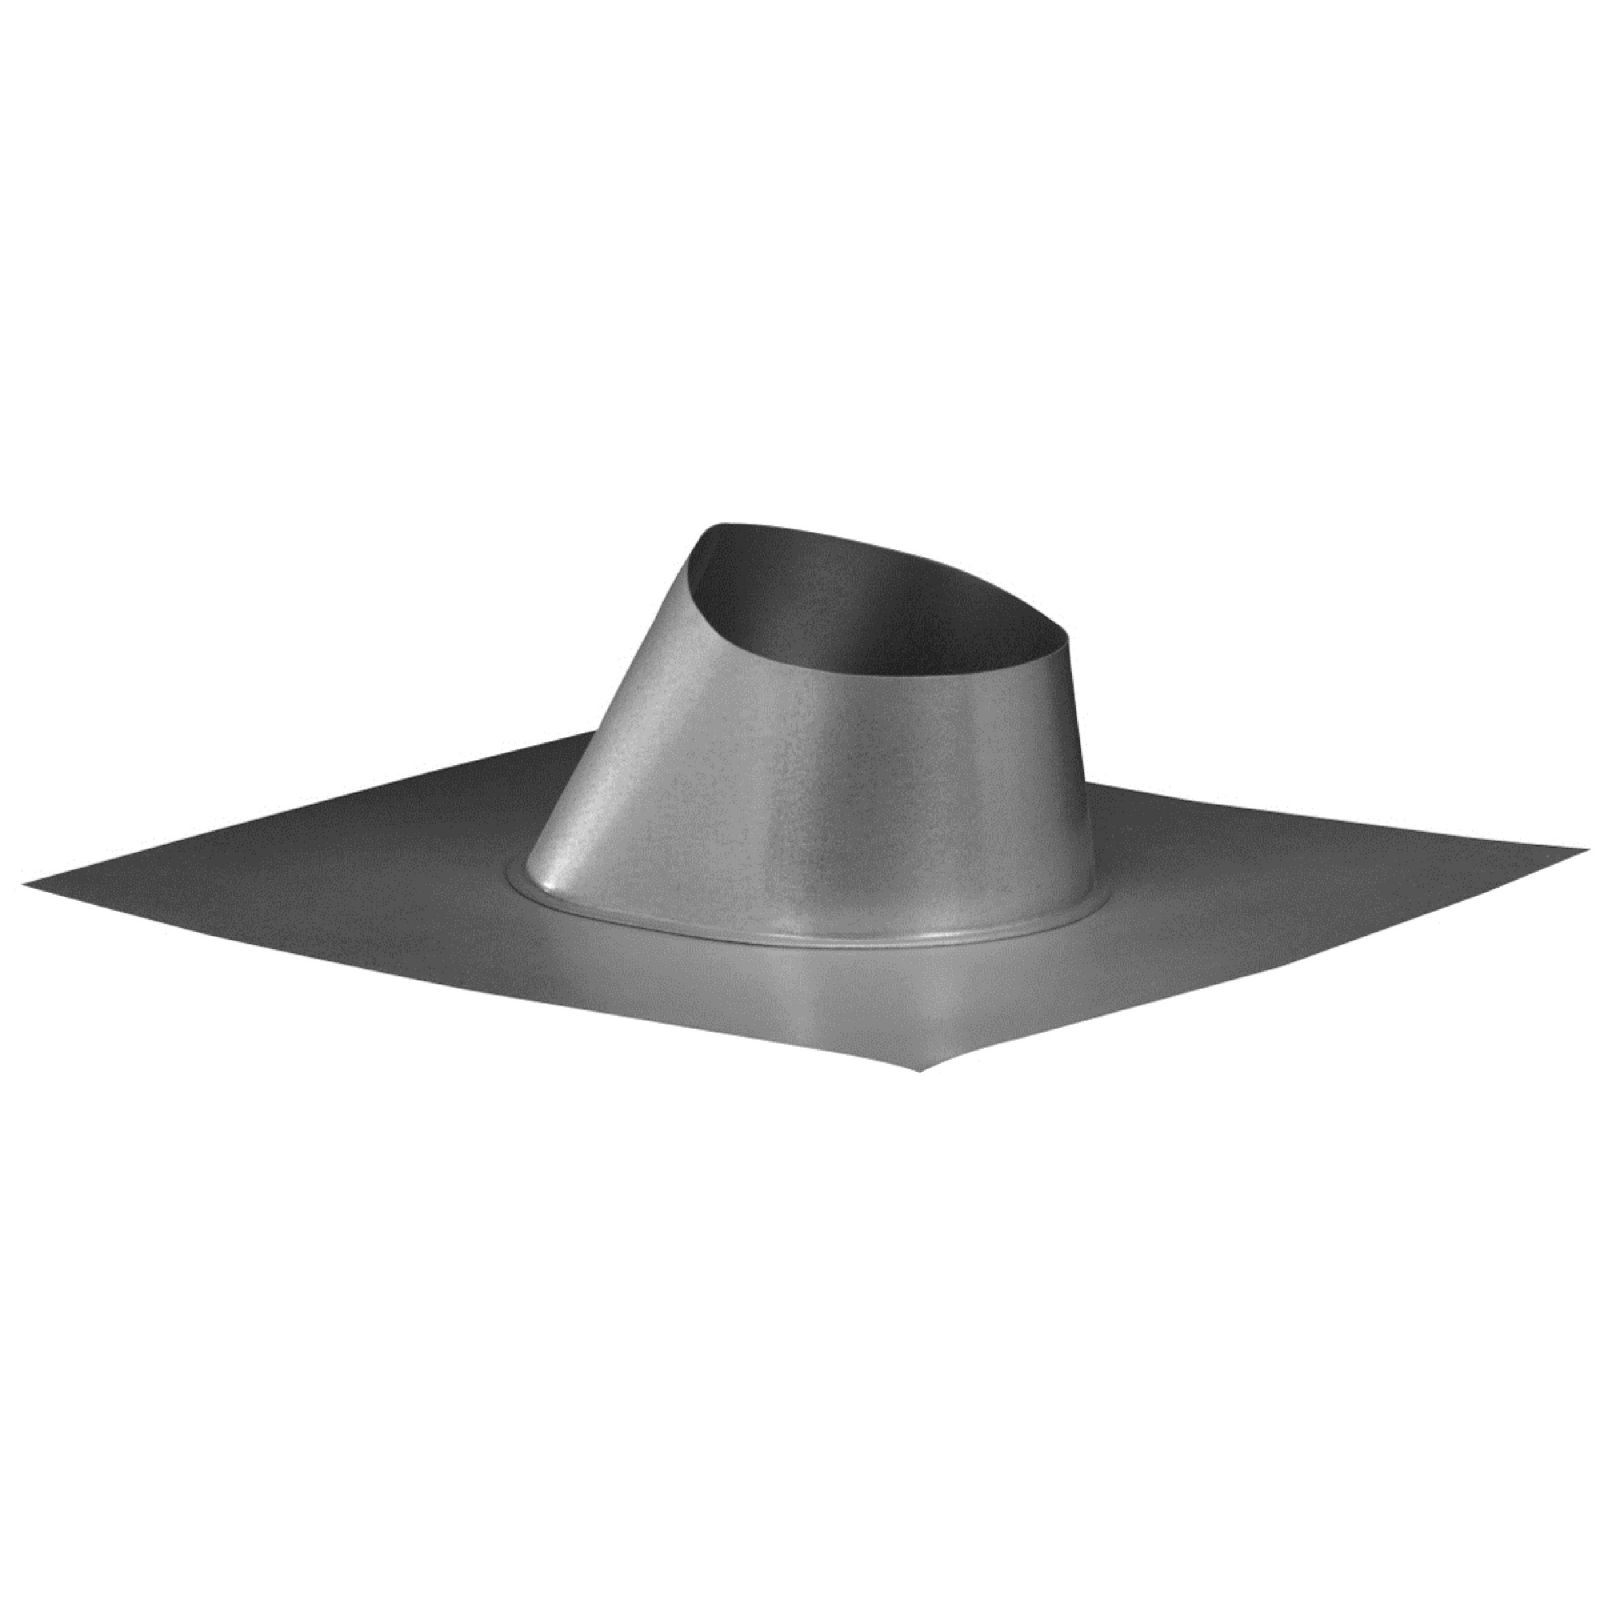 Hart & Cooley 016117 - Adjustable Roof Flashing (0-6/12 Pitch), 4""